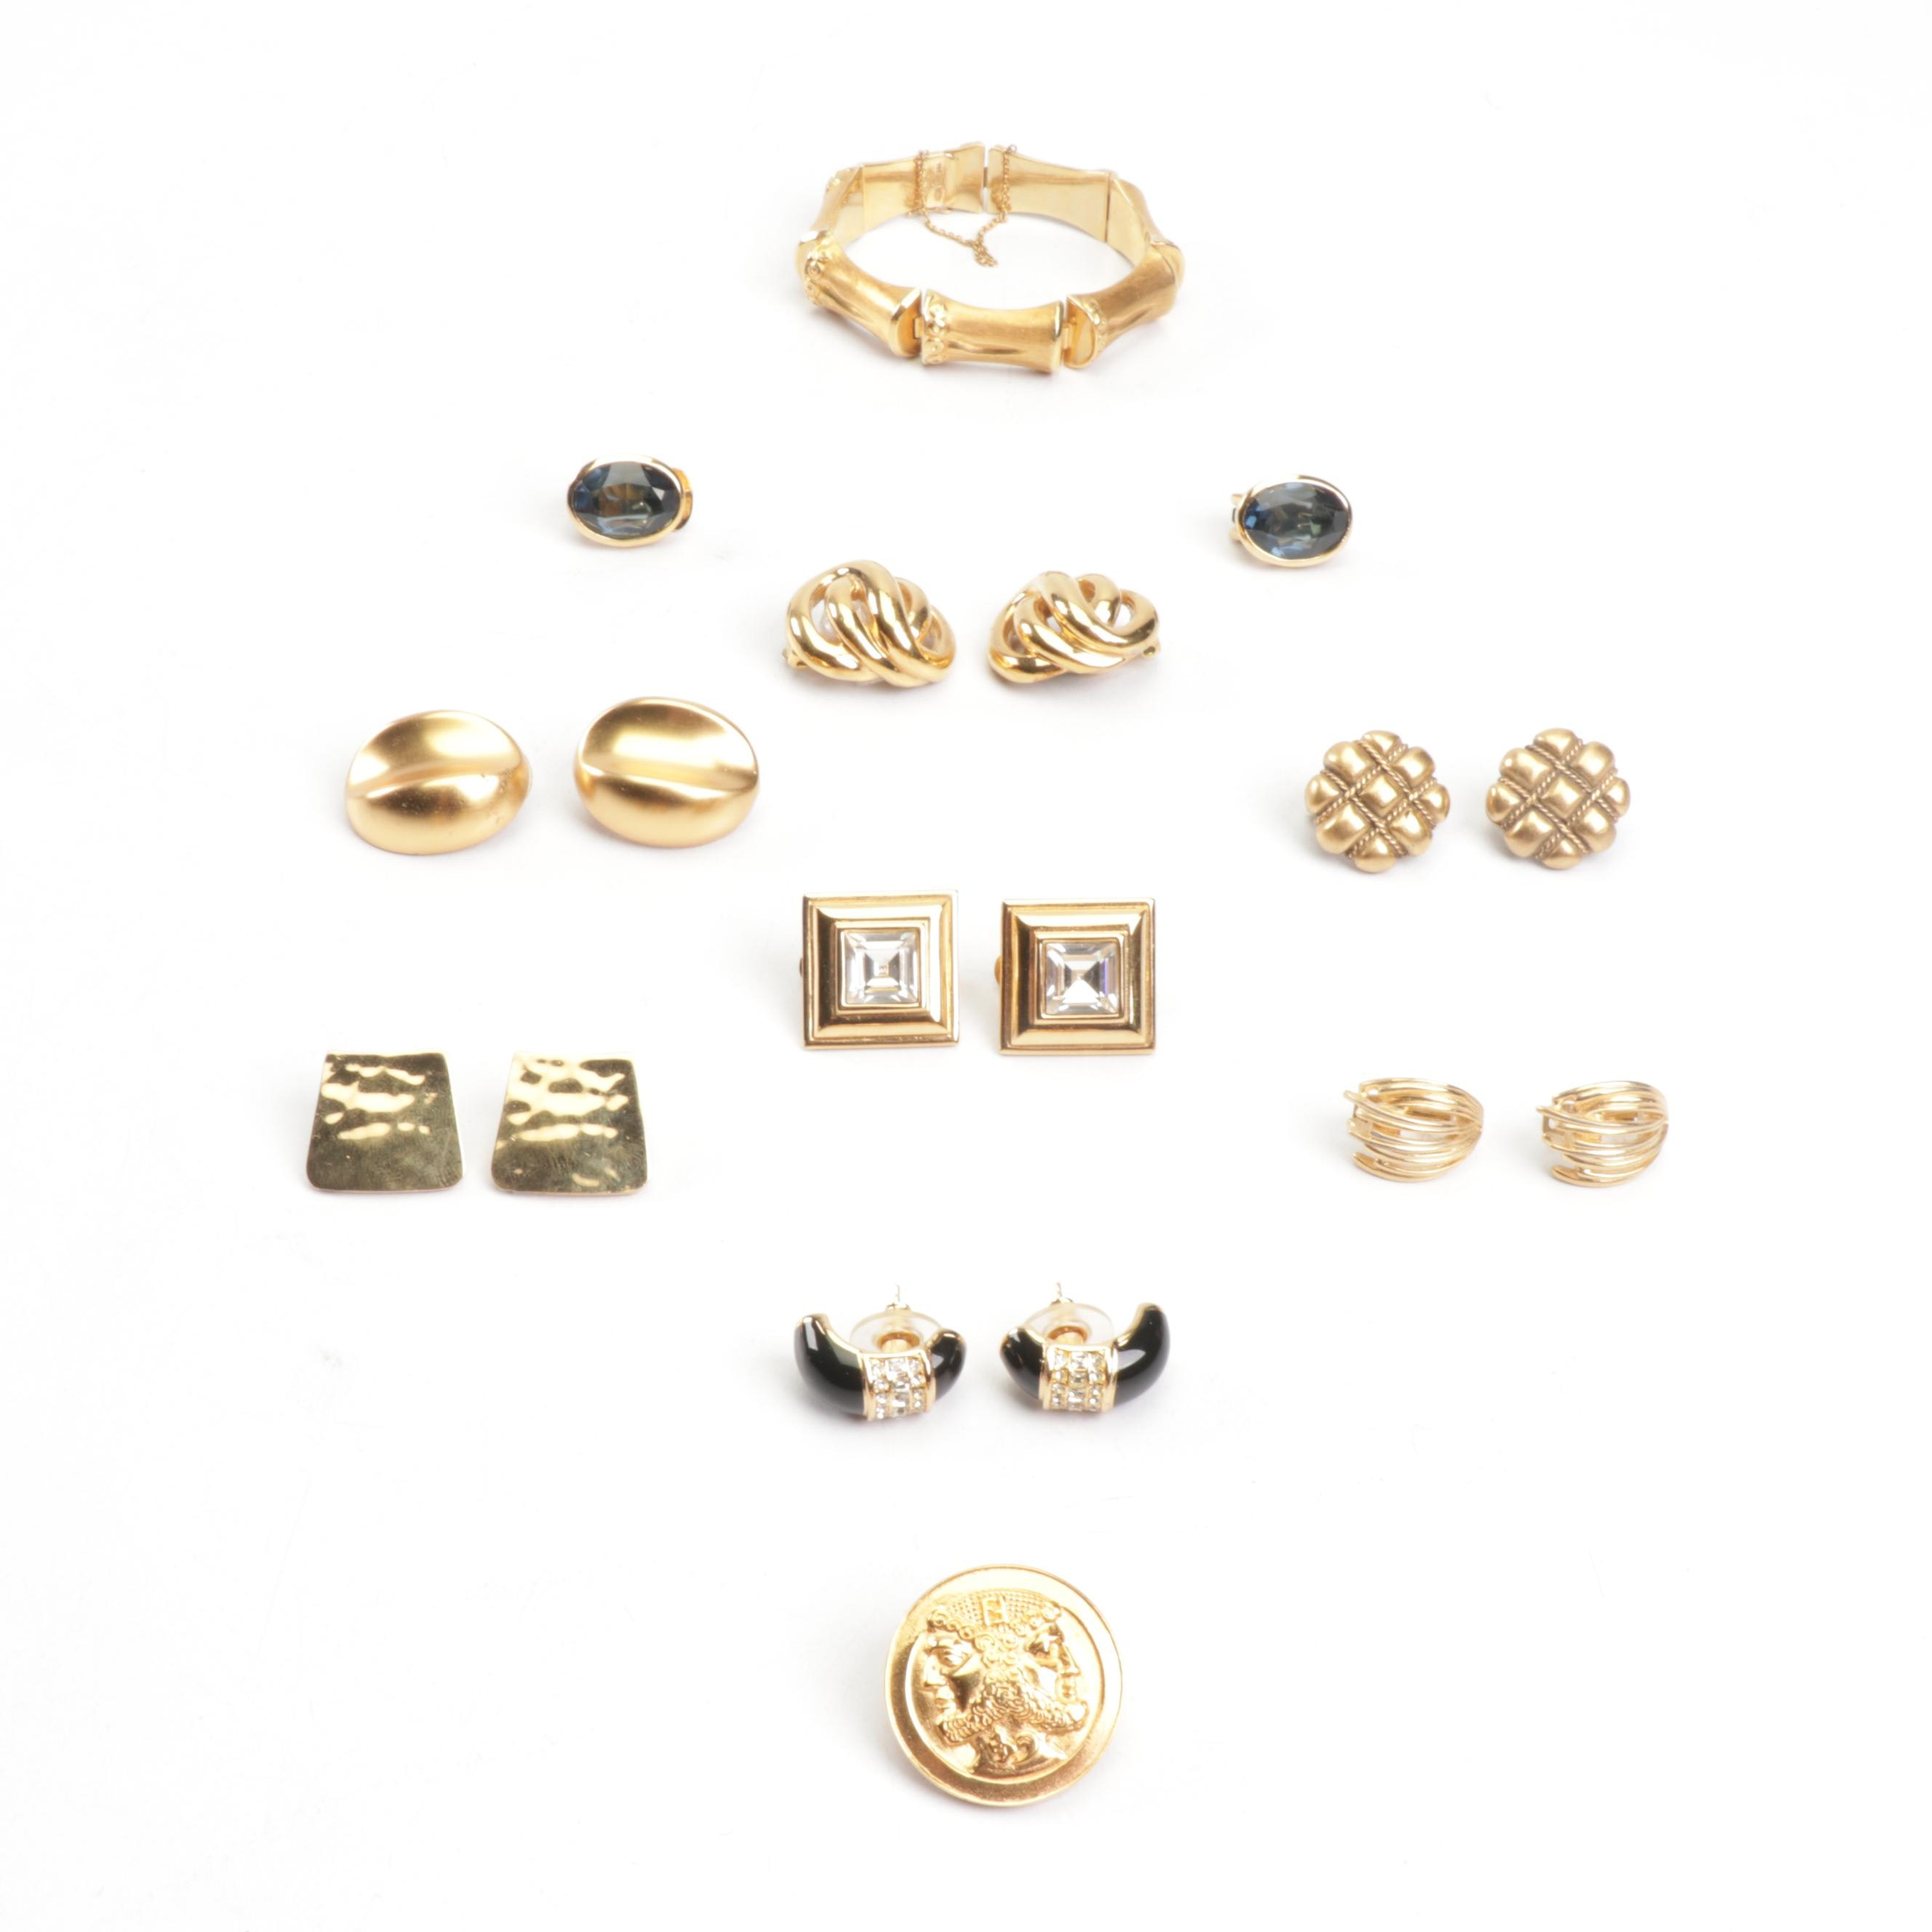 Gold Tone Jewelry Including Christian Dior and Yves Saint Laurent